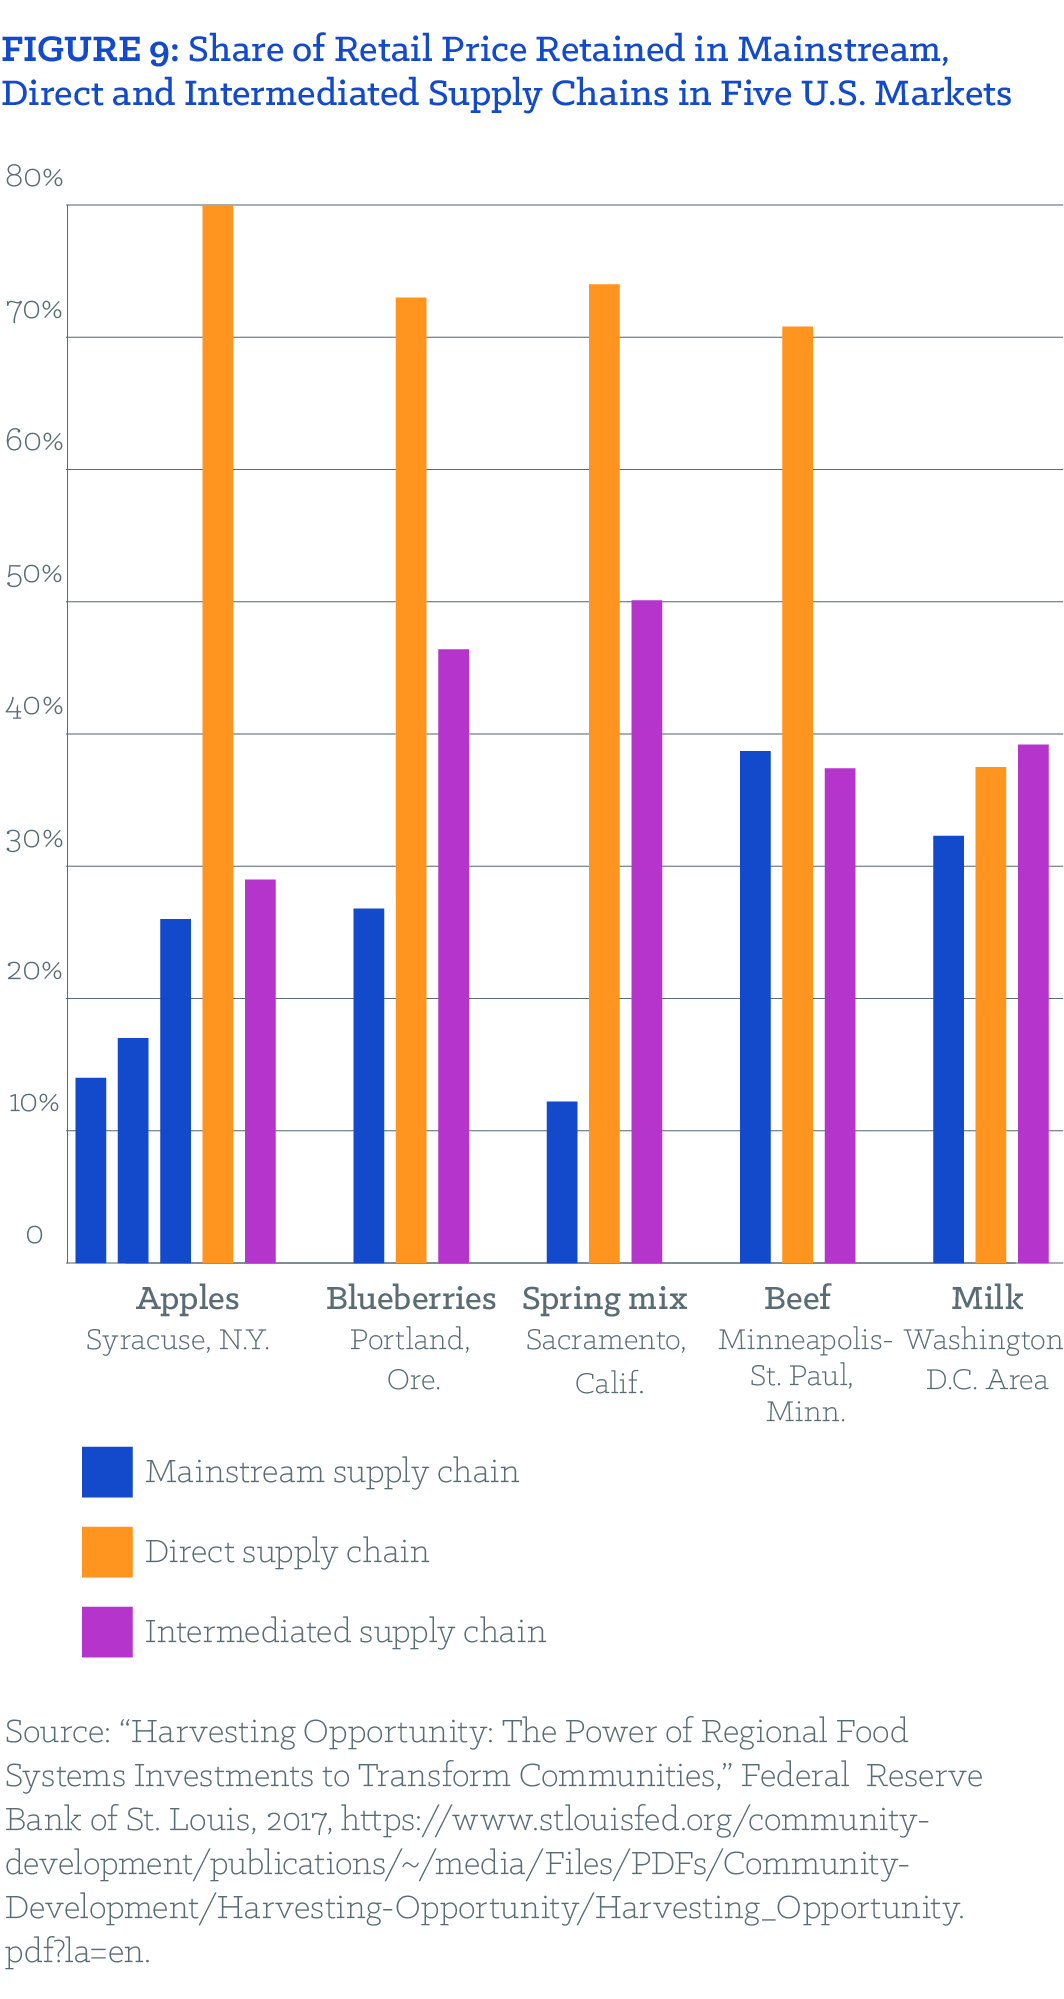 FIGURE 9: Share of Retail Price Retained in Mainstream, Direct and Intermediated Supply Chains in Five U.S. Markets